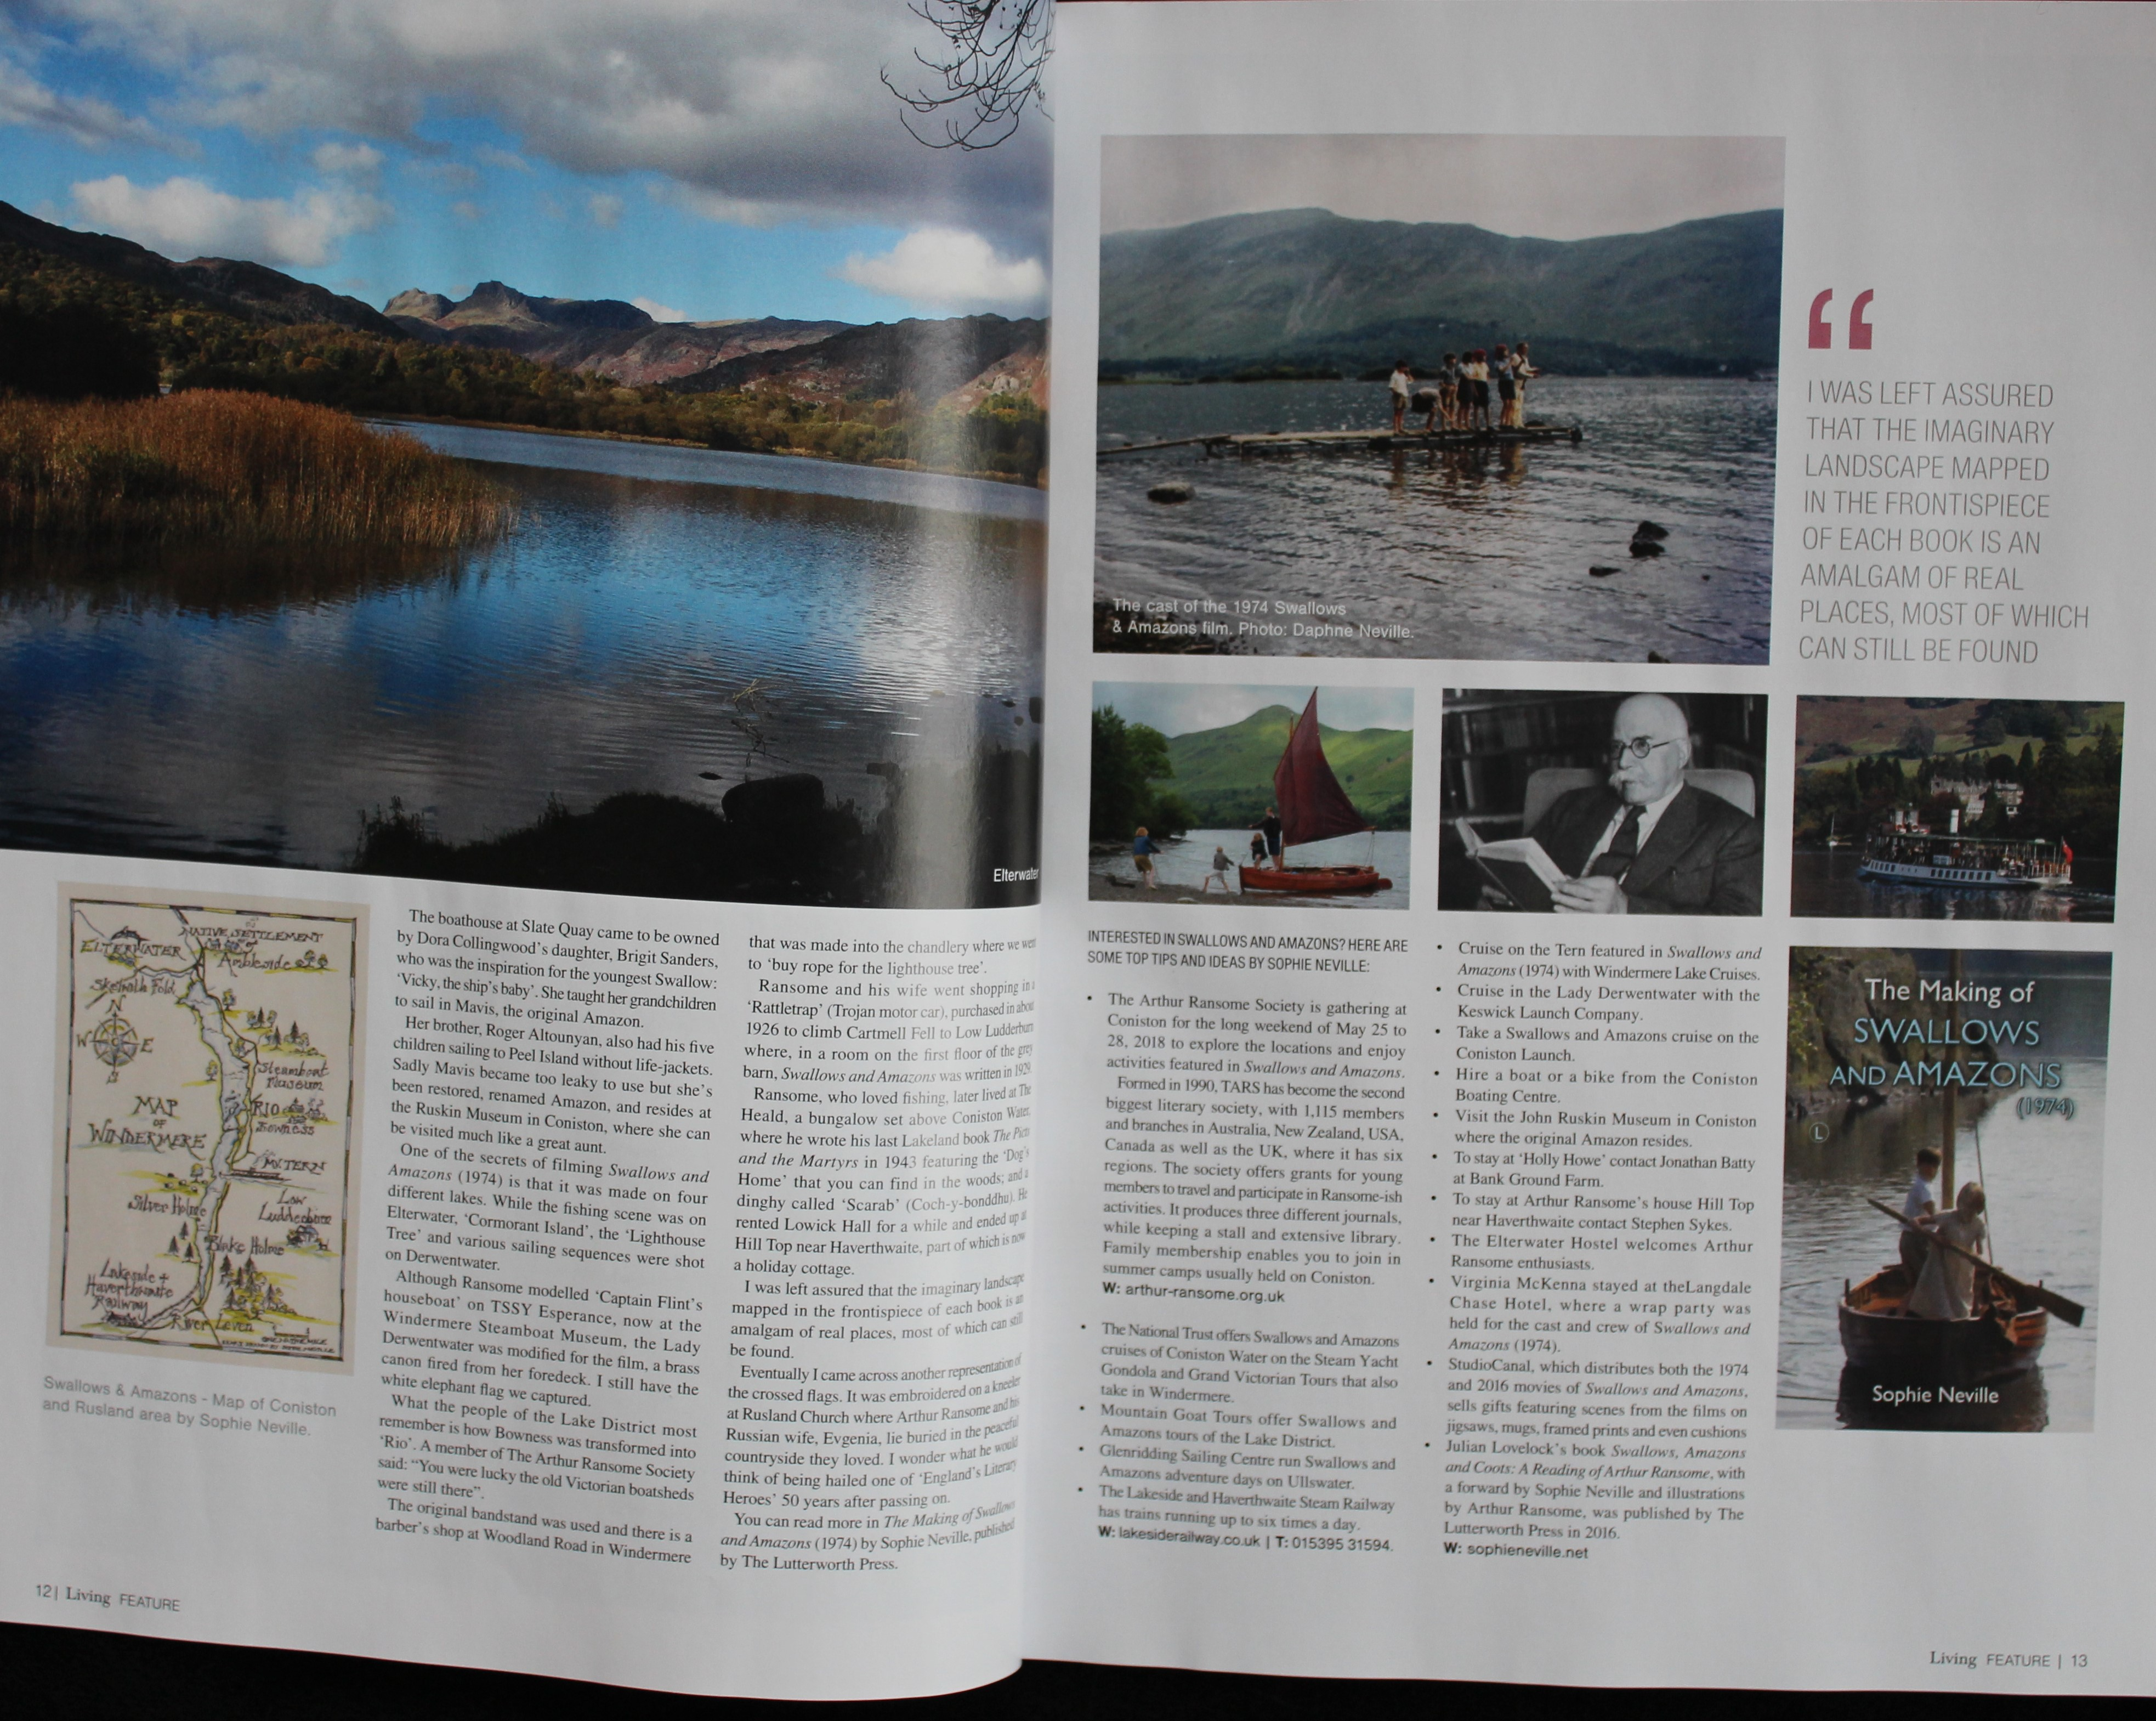 Article on how to find Swallows and Amazons locations